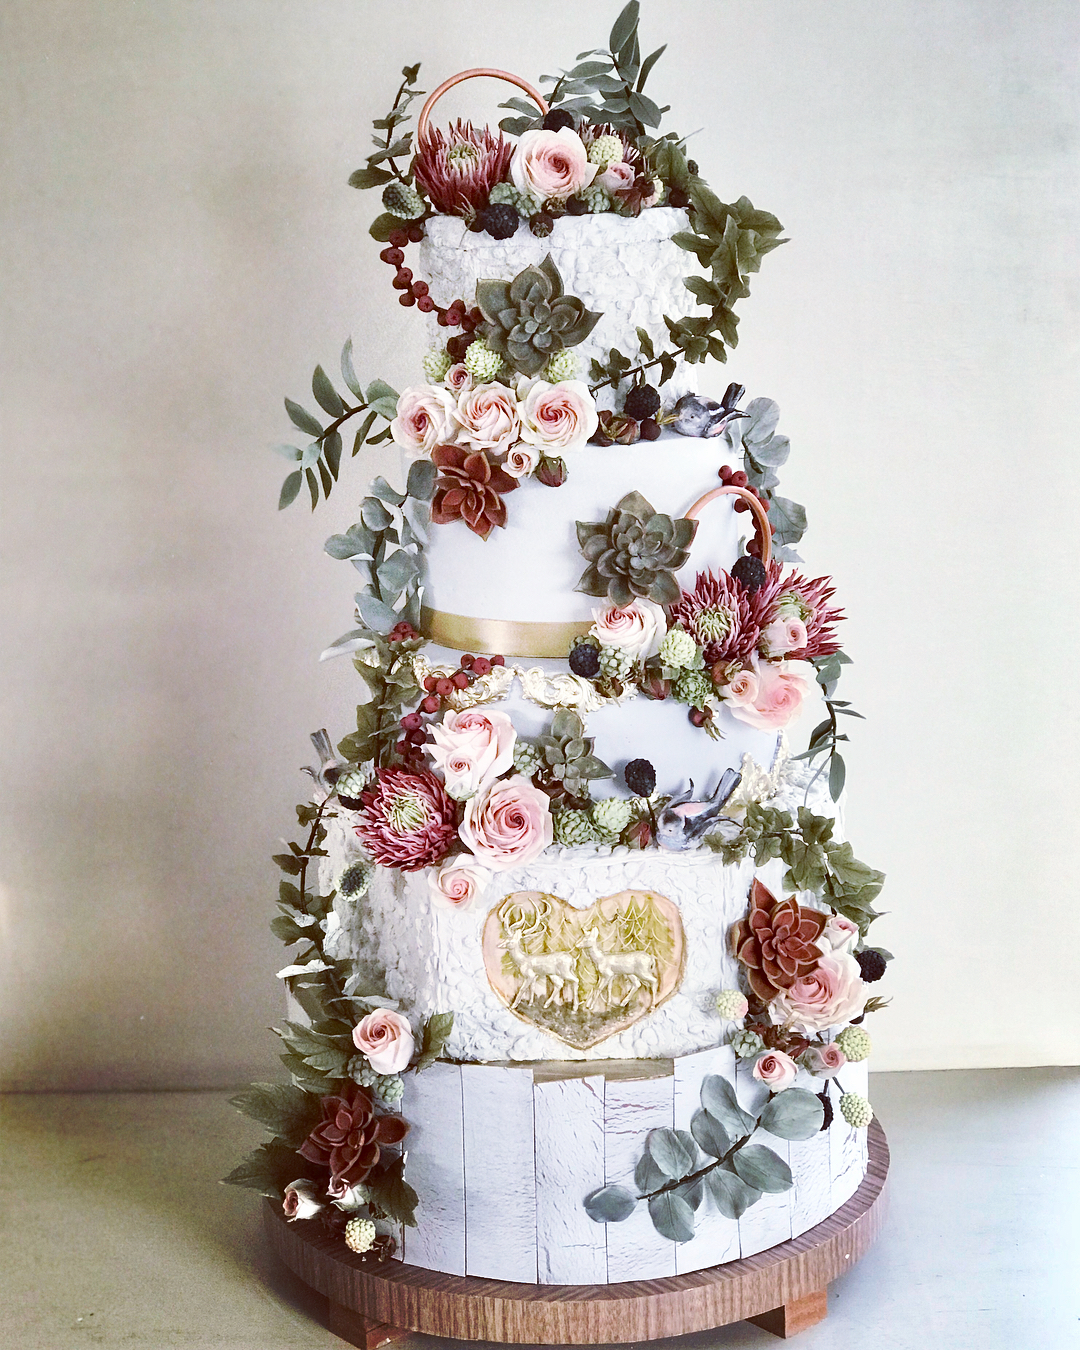 13 Awesome Engagement Cake Designs We Spotted By Indian Bakers The Urban Guide